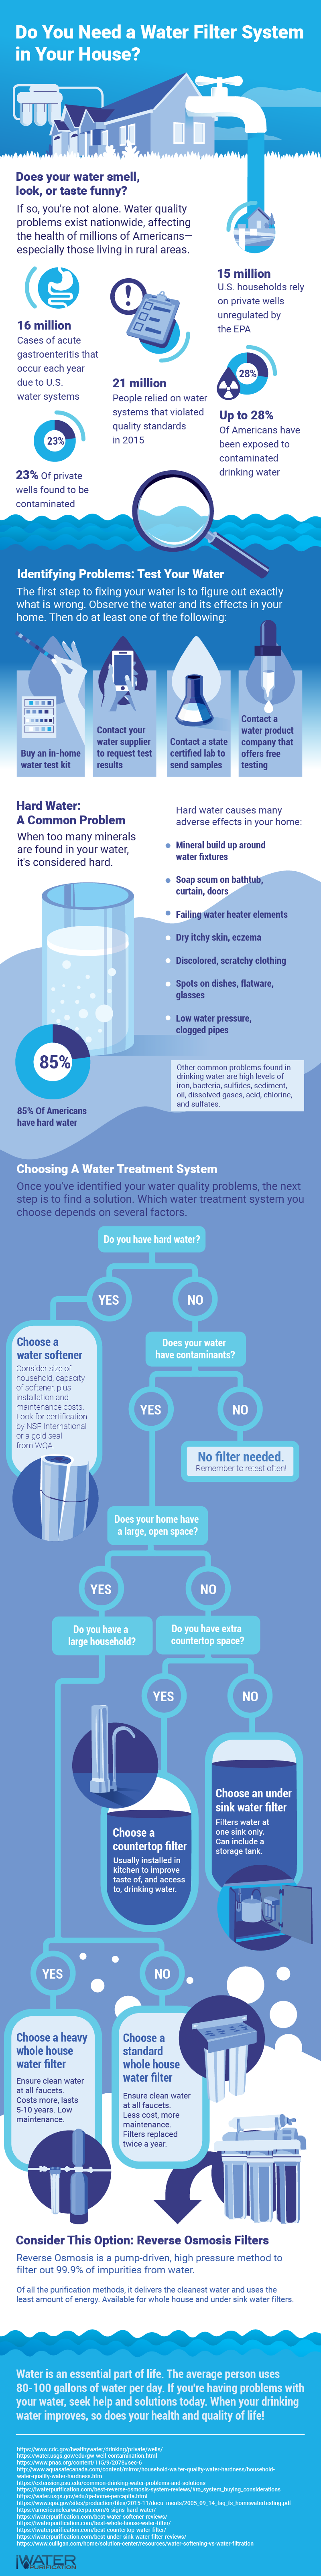 Infograph showing common water quality issues and options for water treatment products and water filters that can help improve the water quality of your home